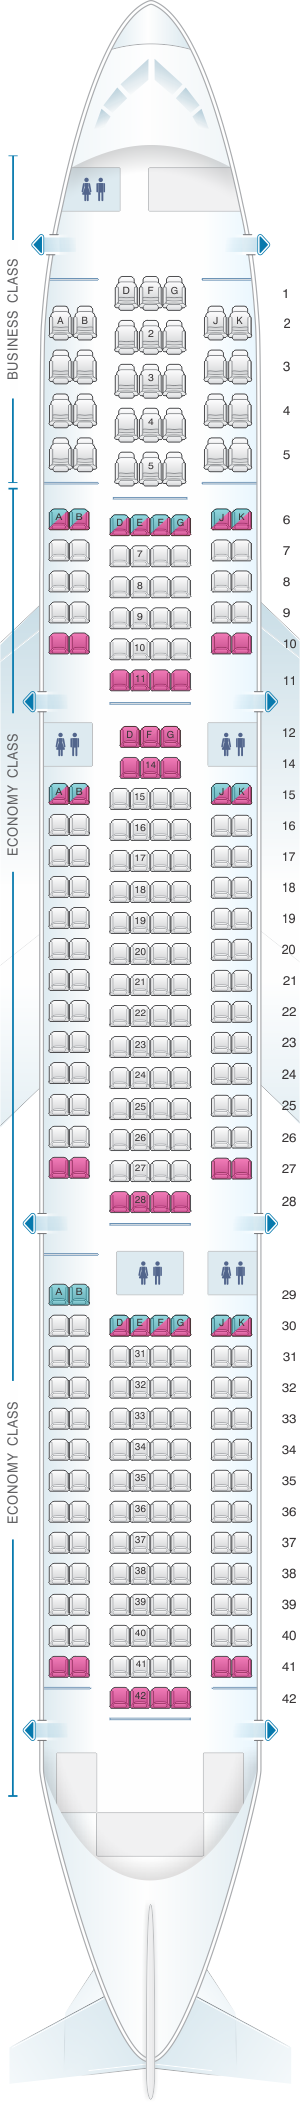 Seat map for Eurowings Boeing B767